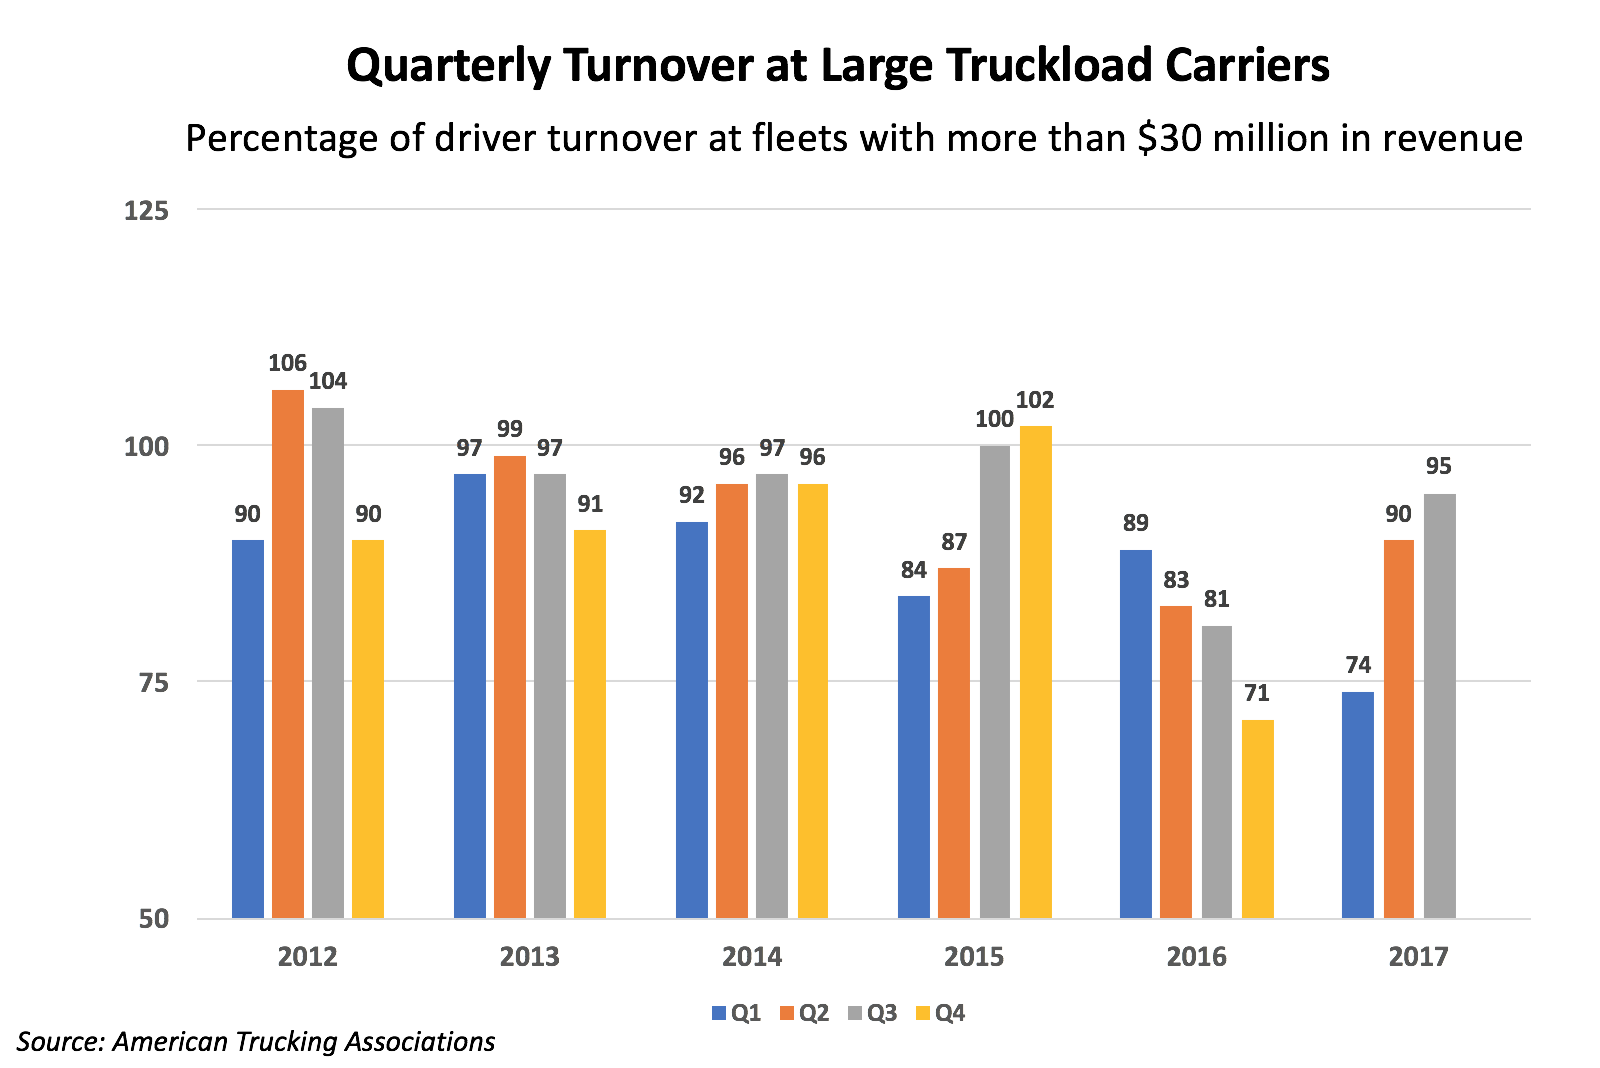 Quarterly Turnover at Large Truckload Carriers